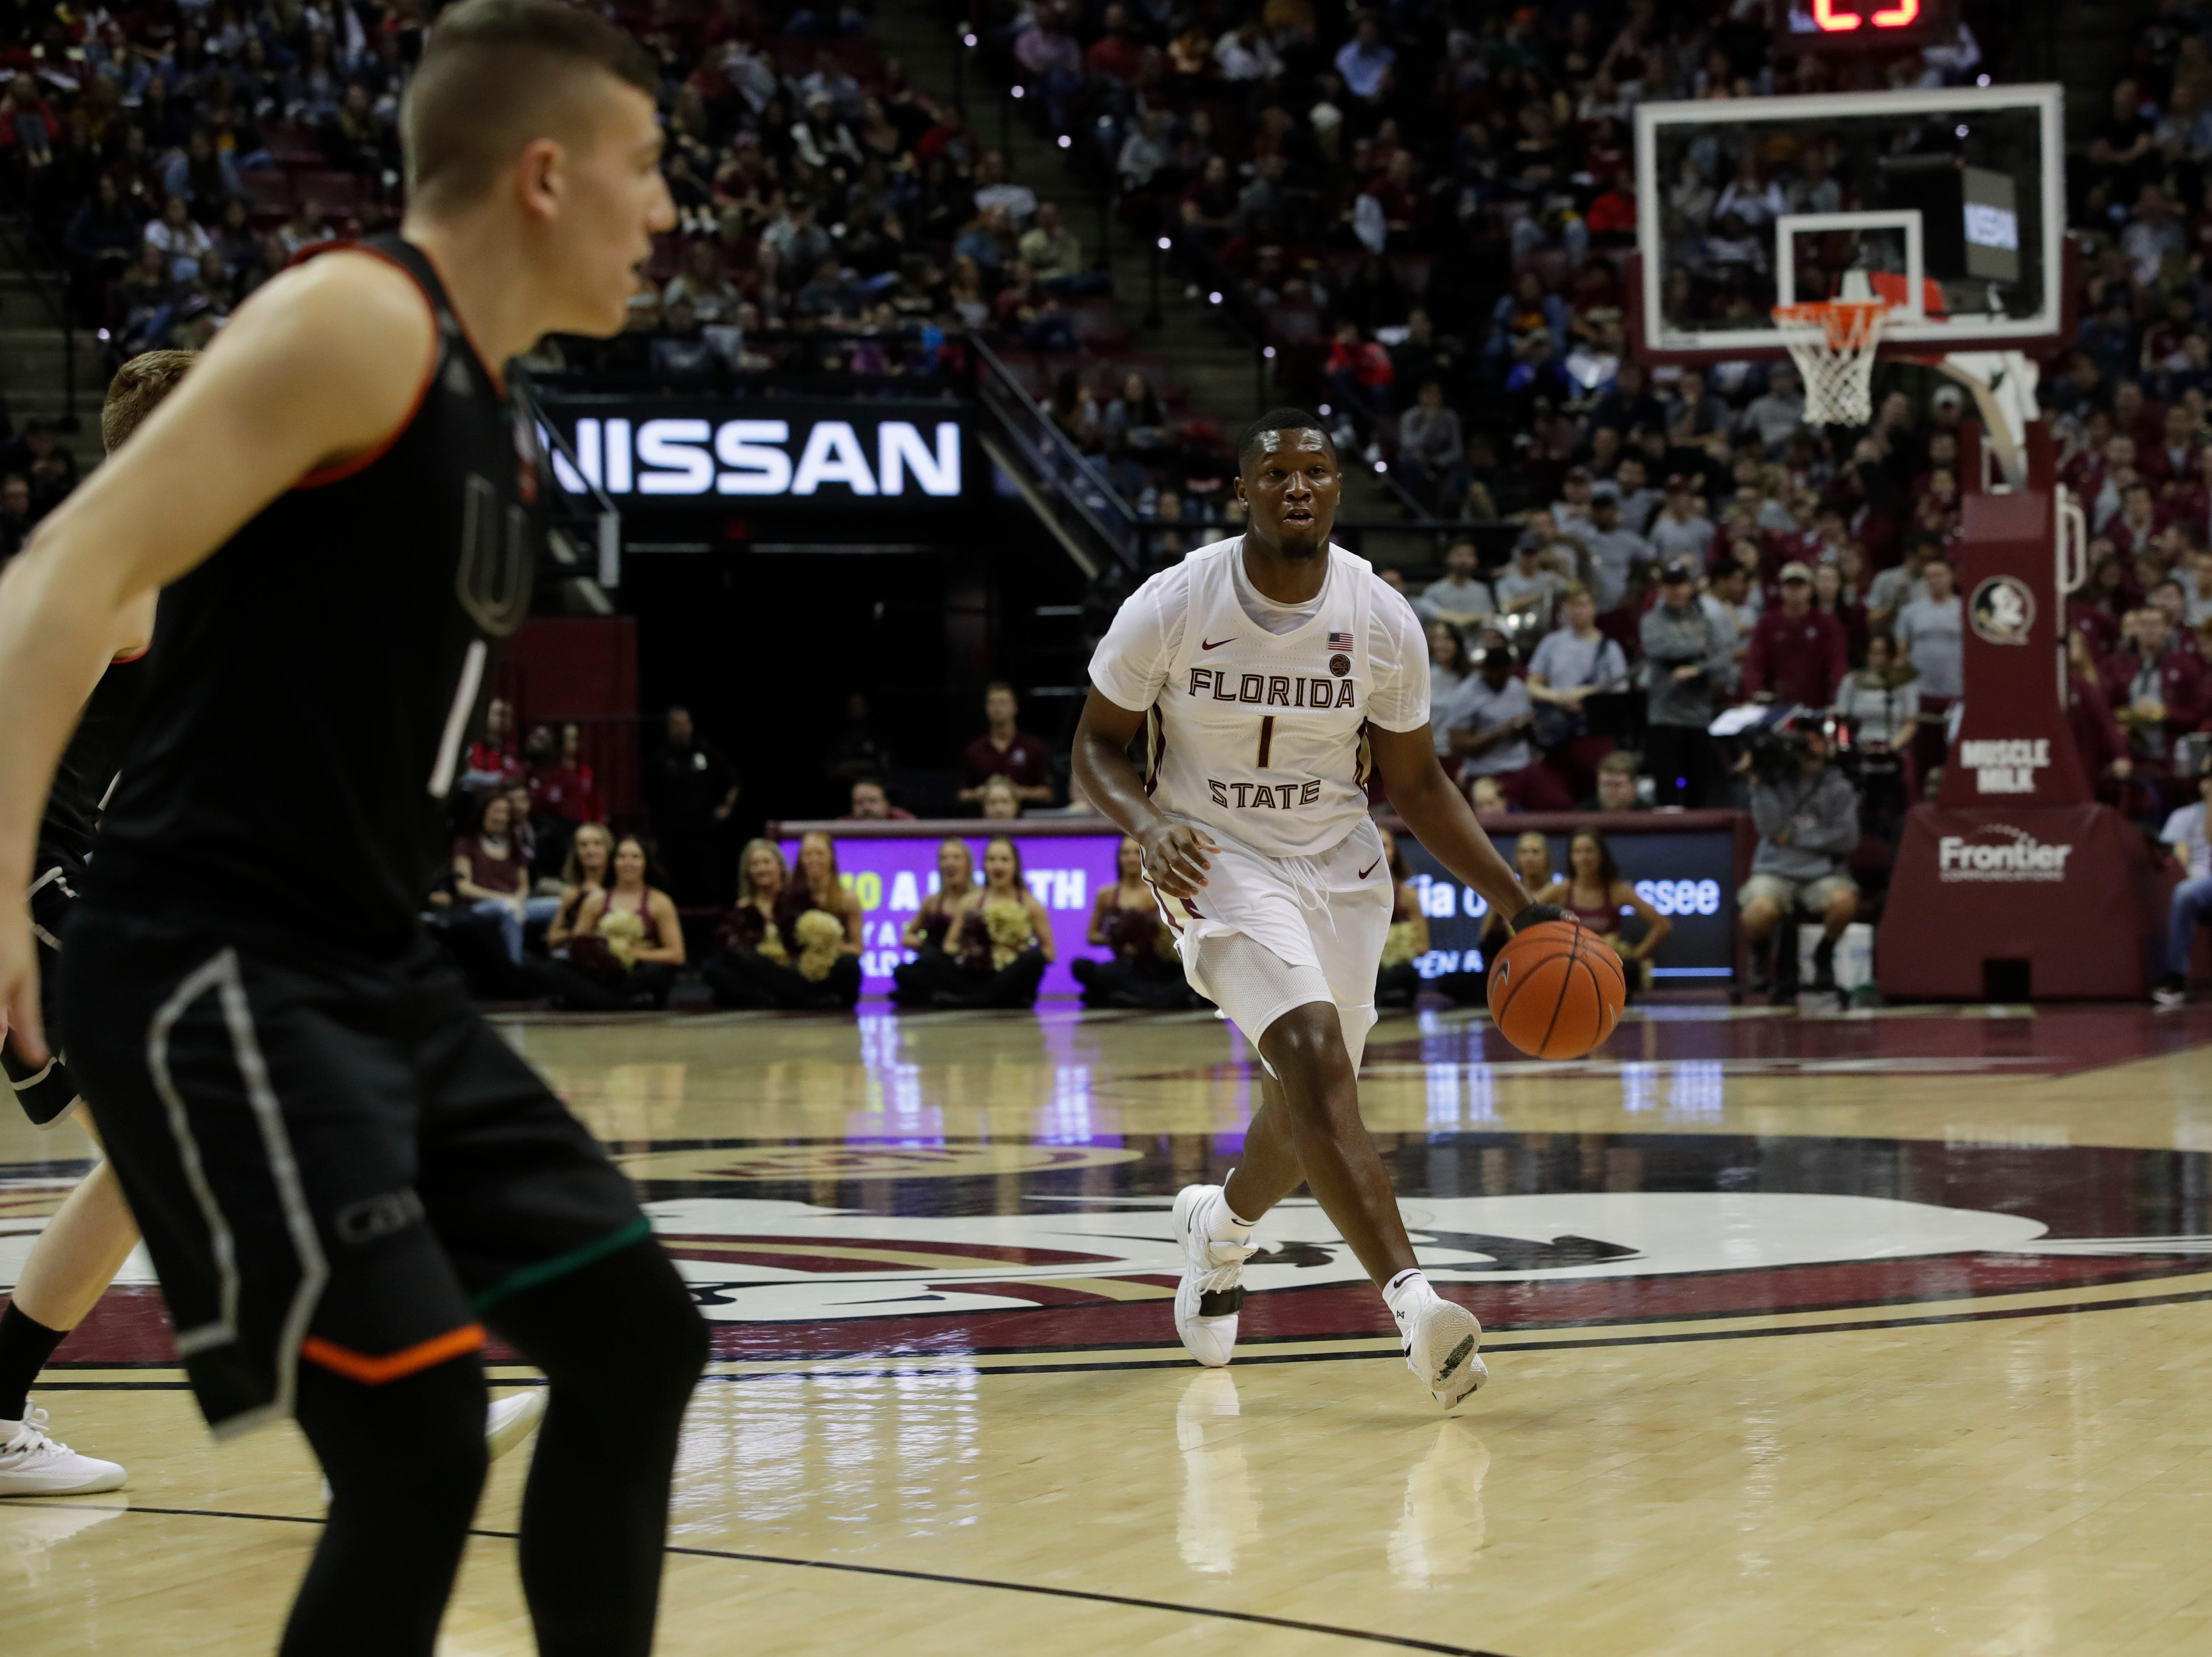 Florida State Seminoles forward Raiquan Gray (1) dribbles during a game between FSU and University of Miami Wednesday, Jan. 9, 2019.